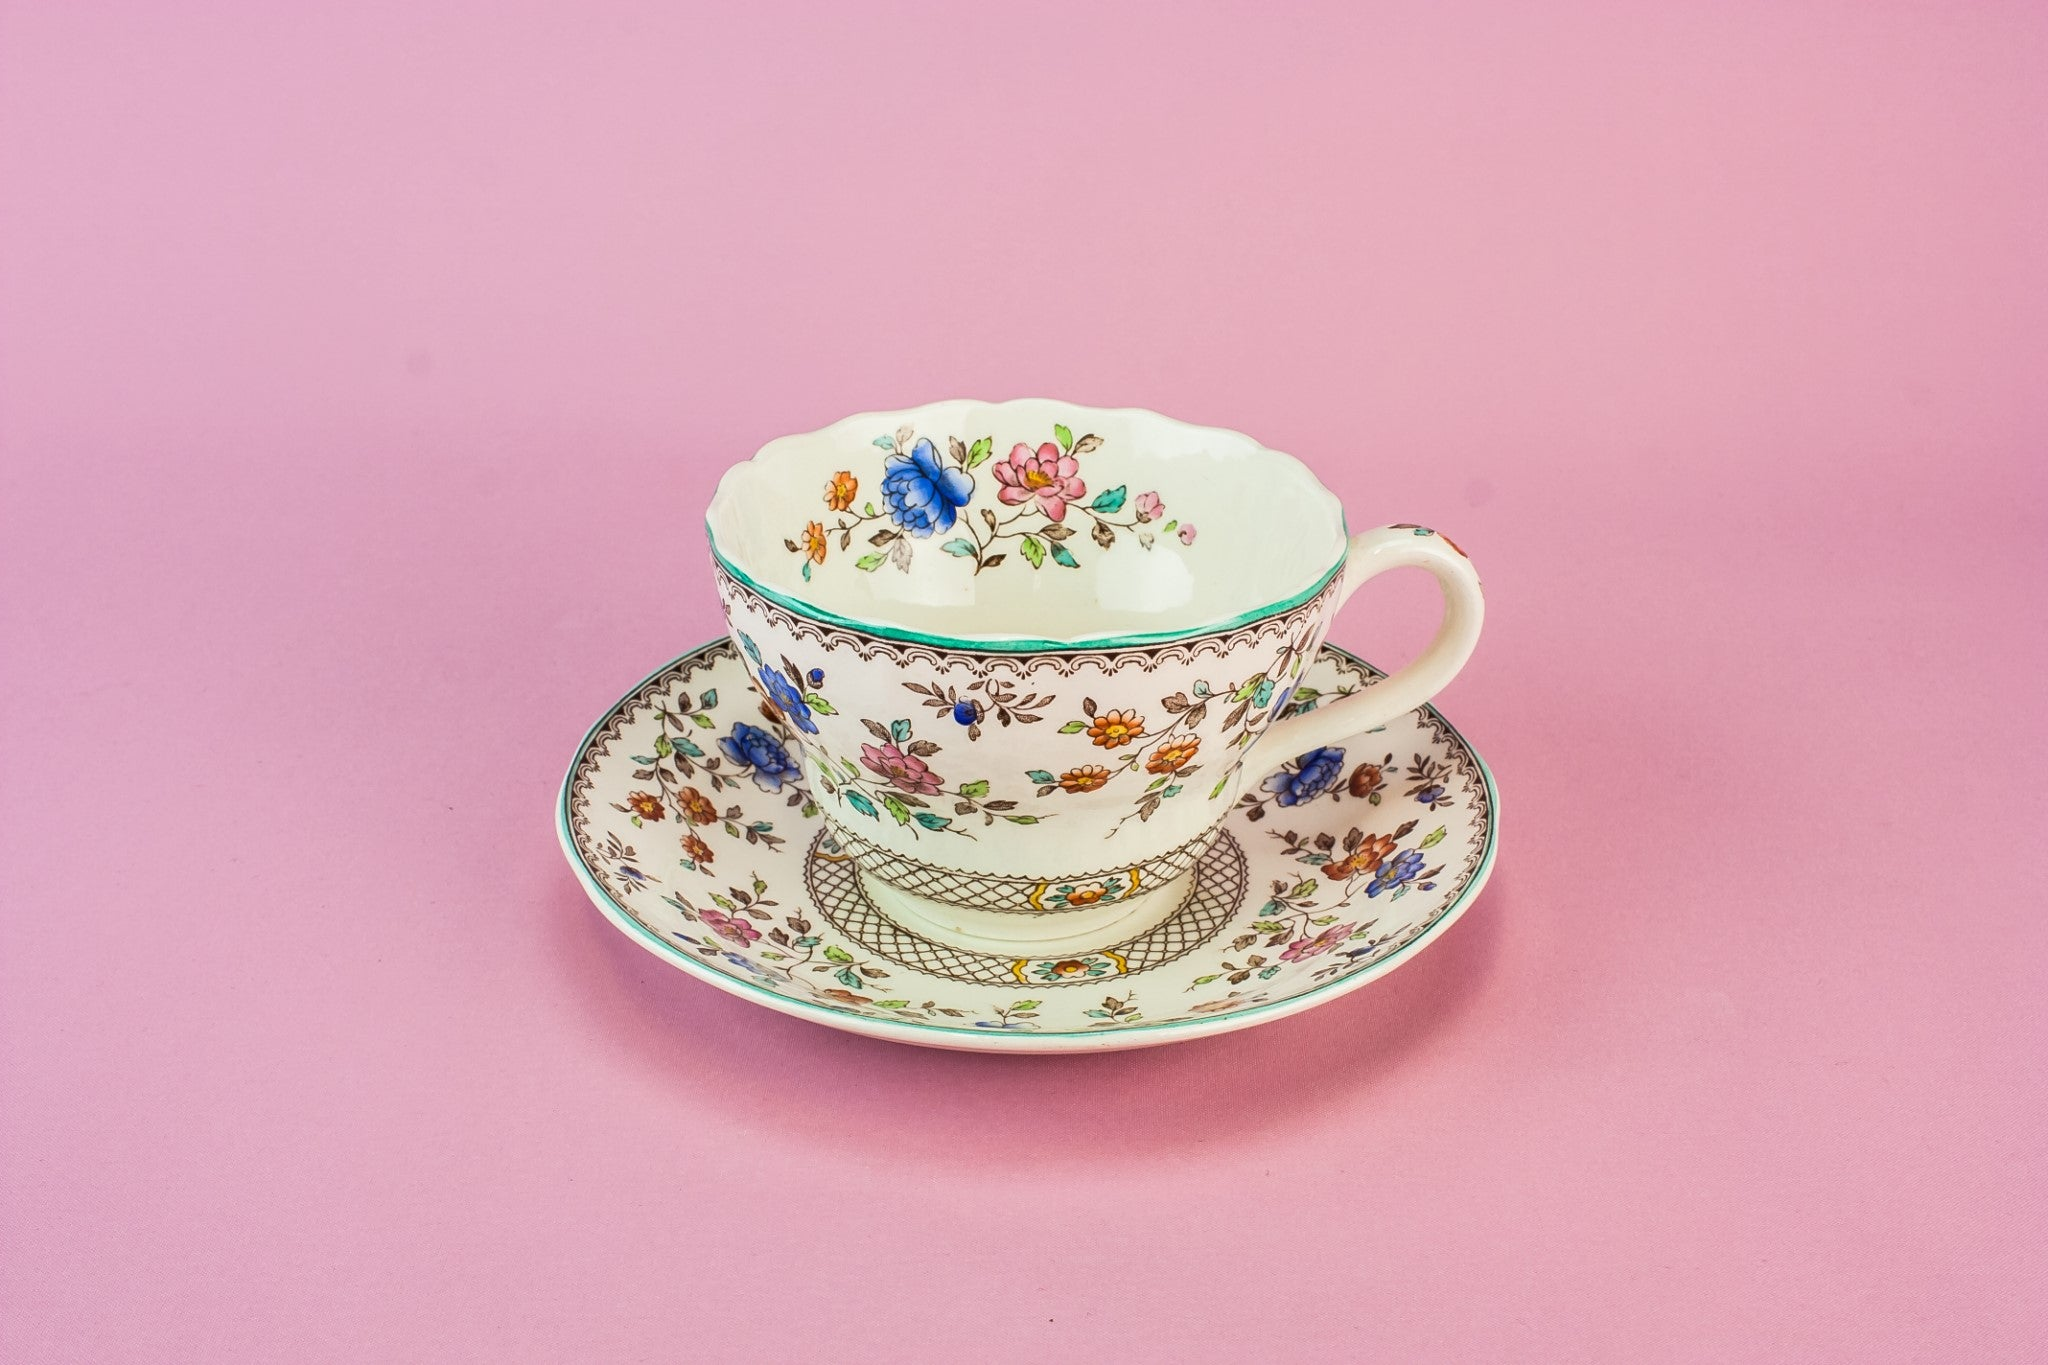 Large Copeland cup & saucer